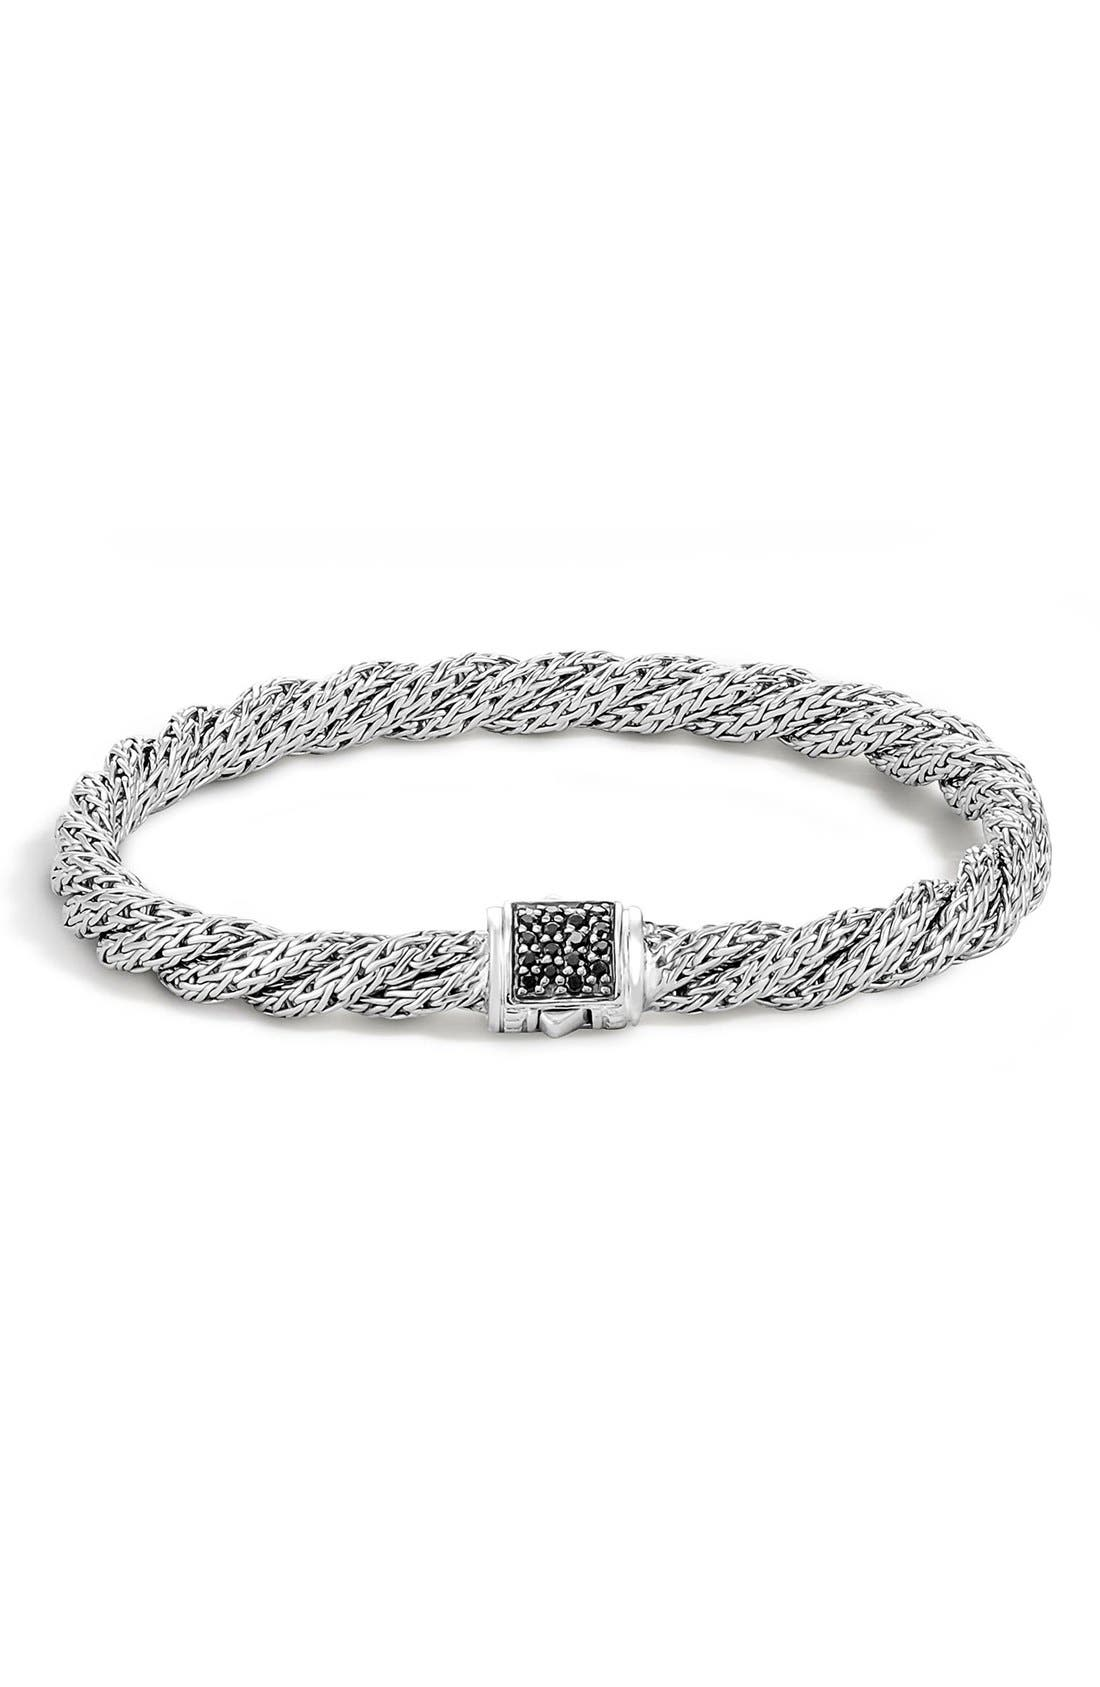 Main Image - John Hardy 'Classic Cable' Twisted Chain Bracelet